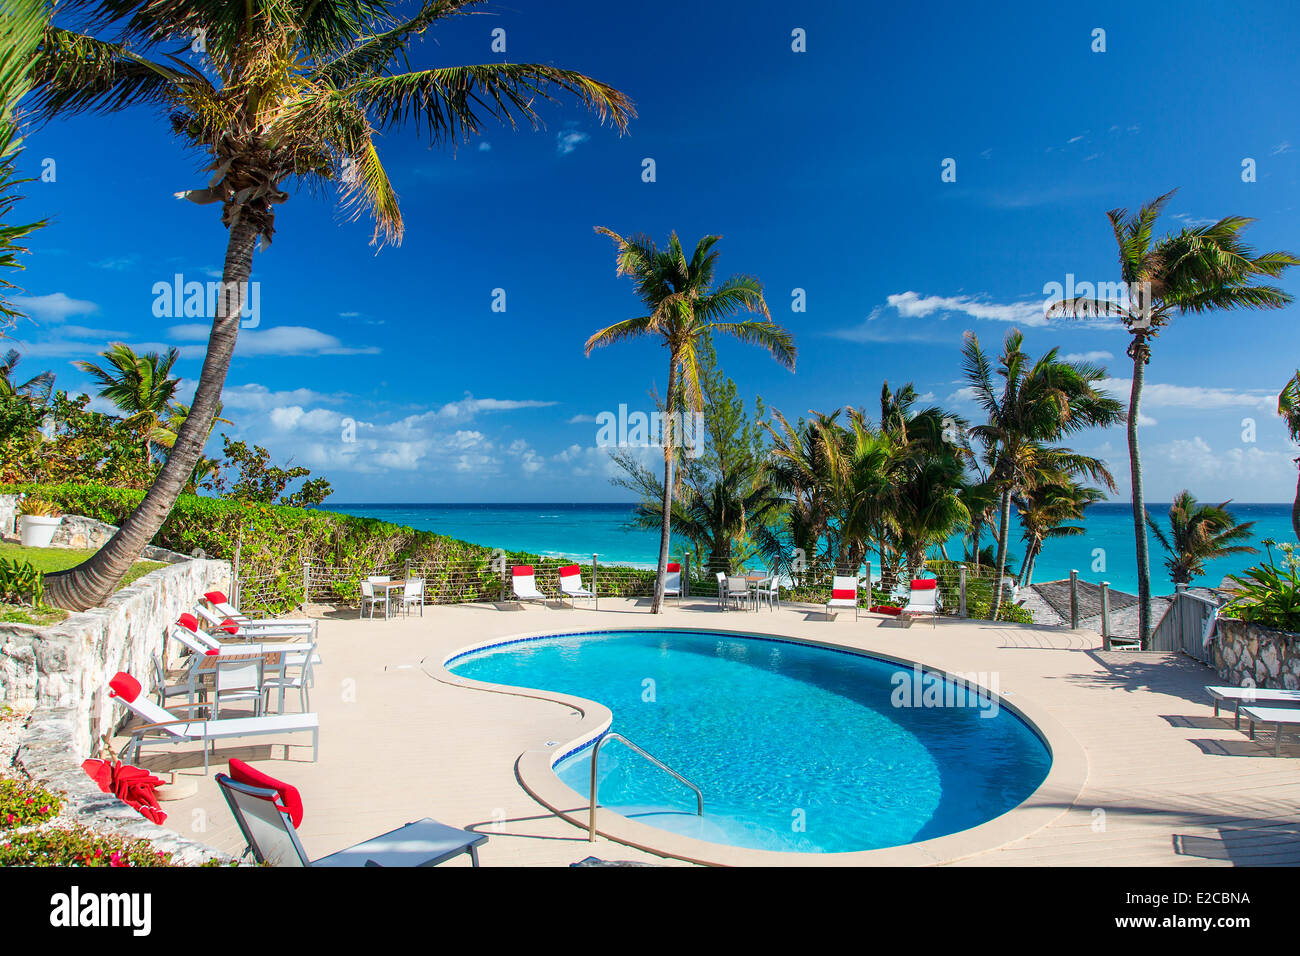 Bahamas, Harbour Island, Coral Sands Hotel - Stock Image